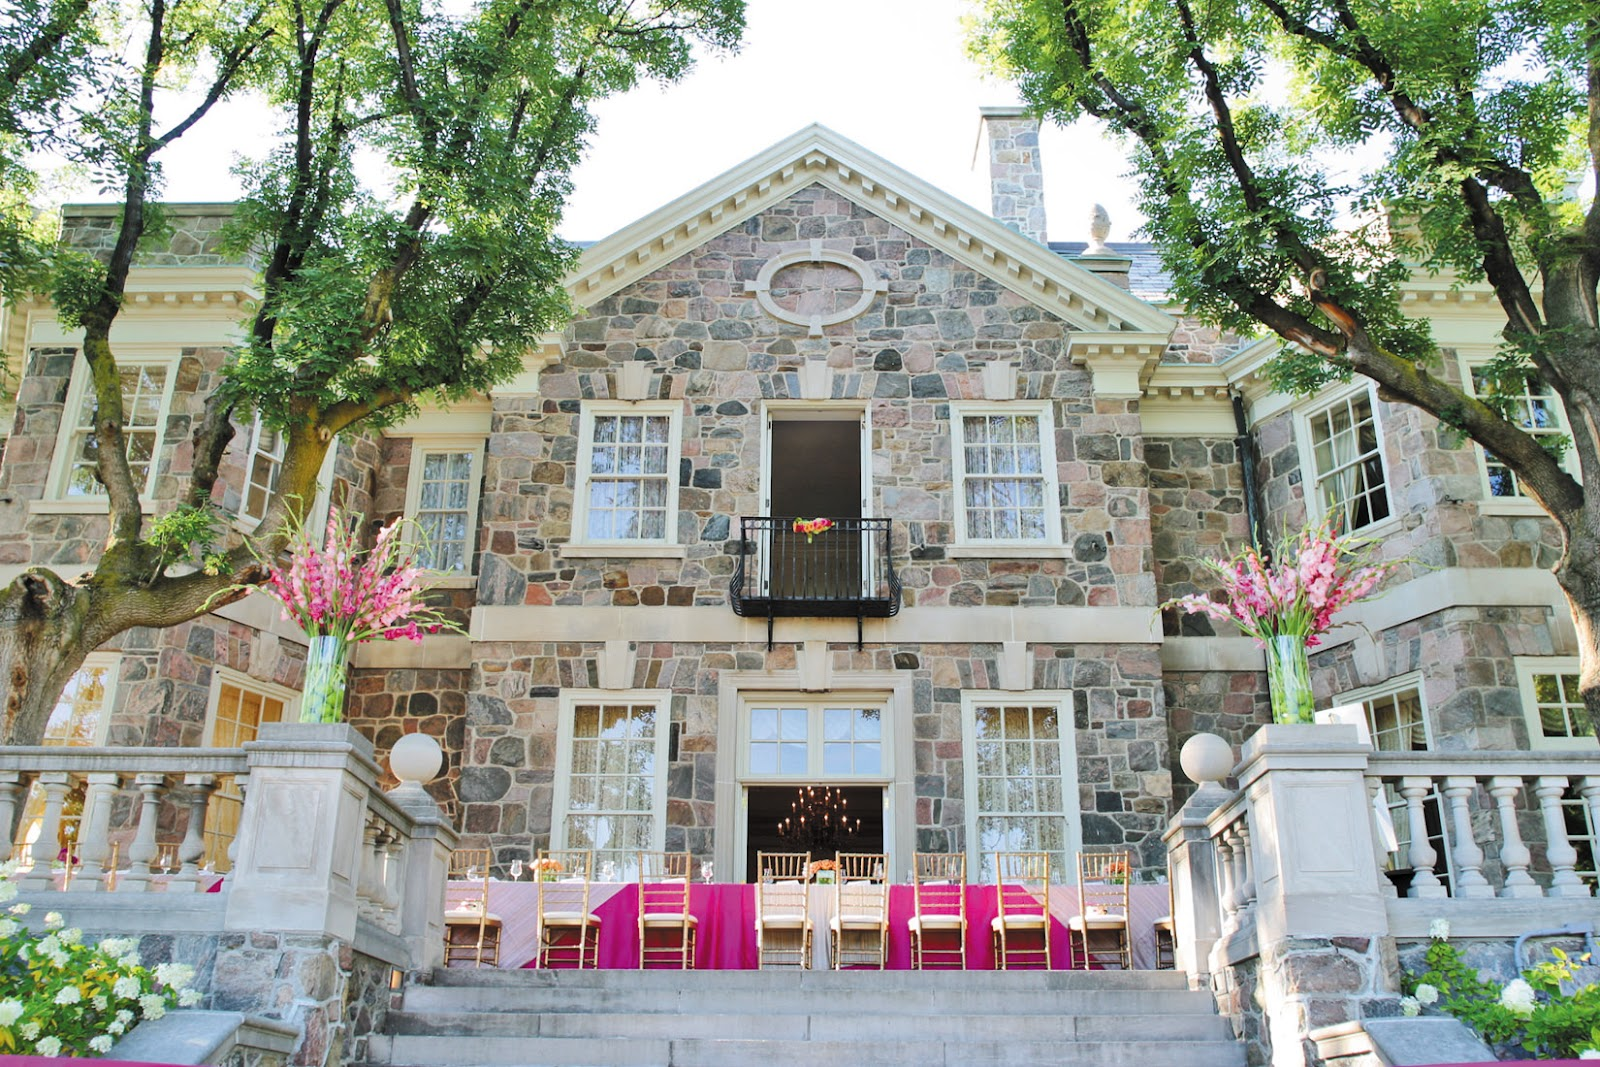 The Wedding Feast Was Held Outside On Stone Patio Under Stars At Graydon Hall